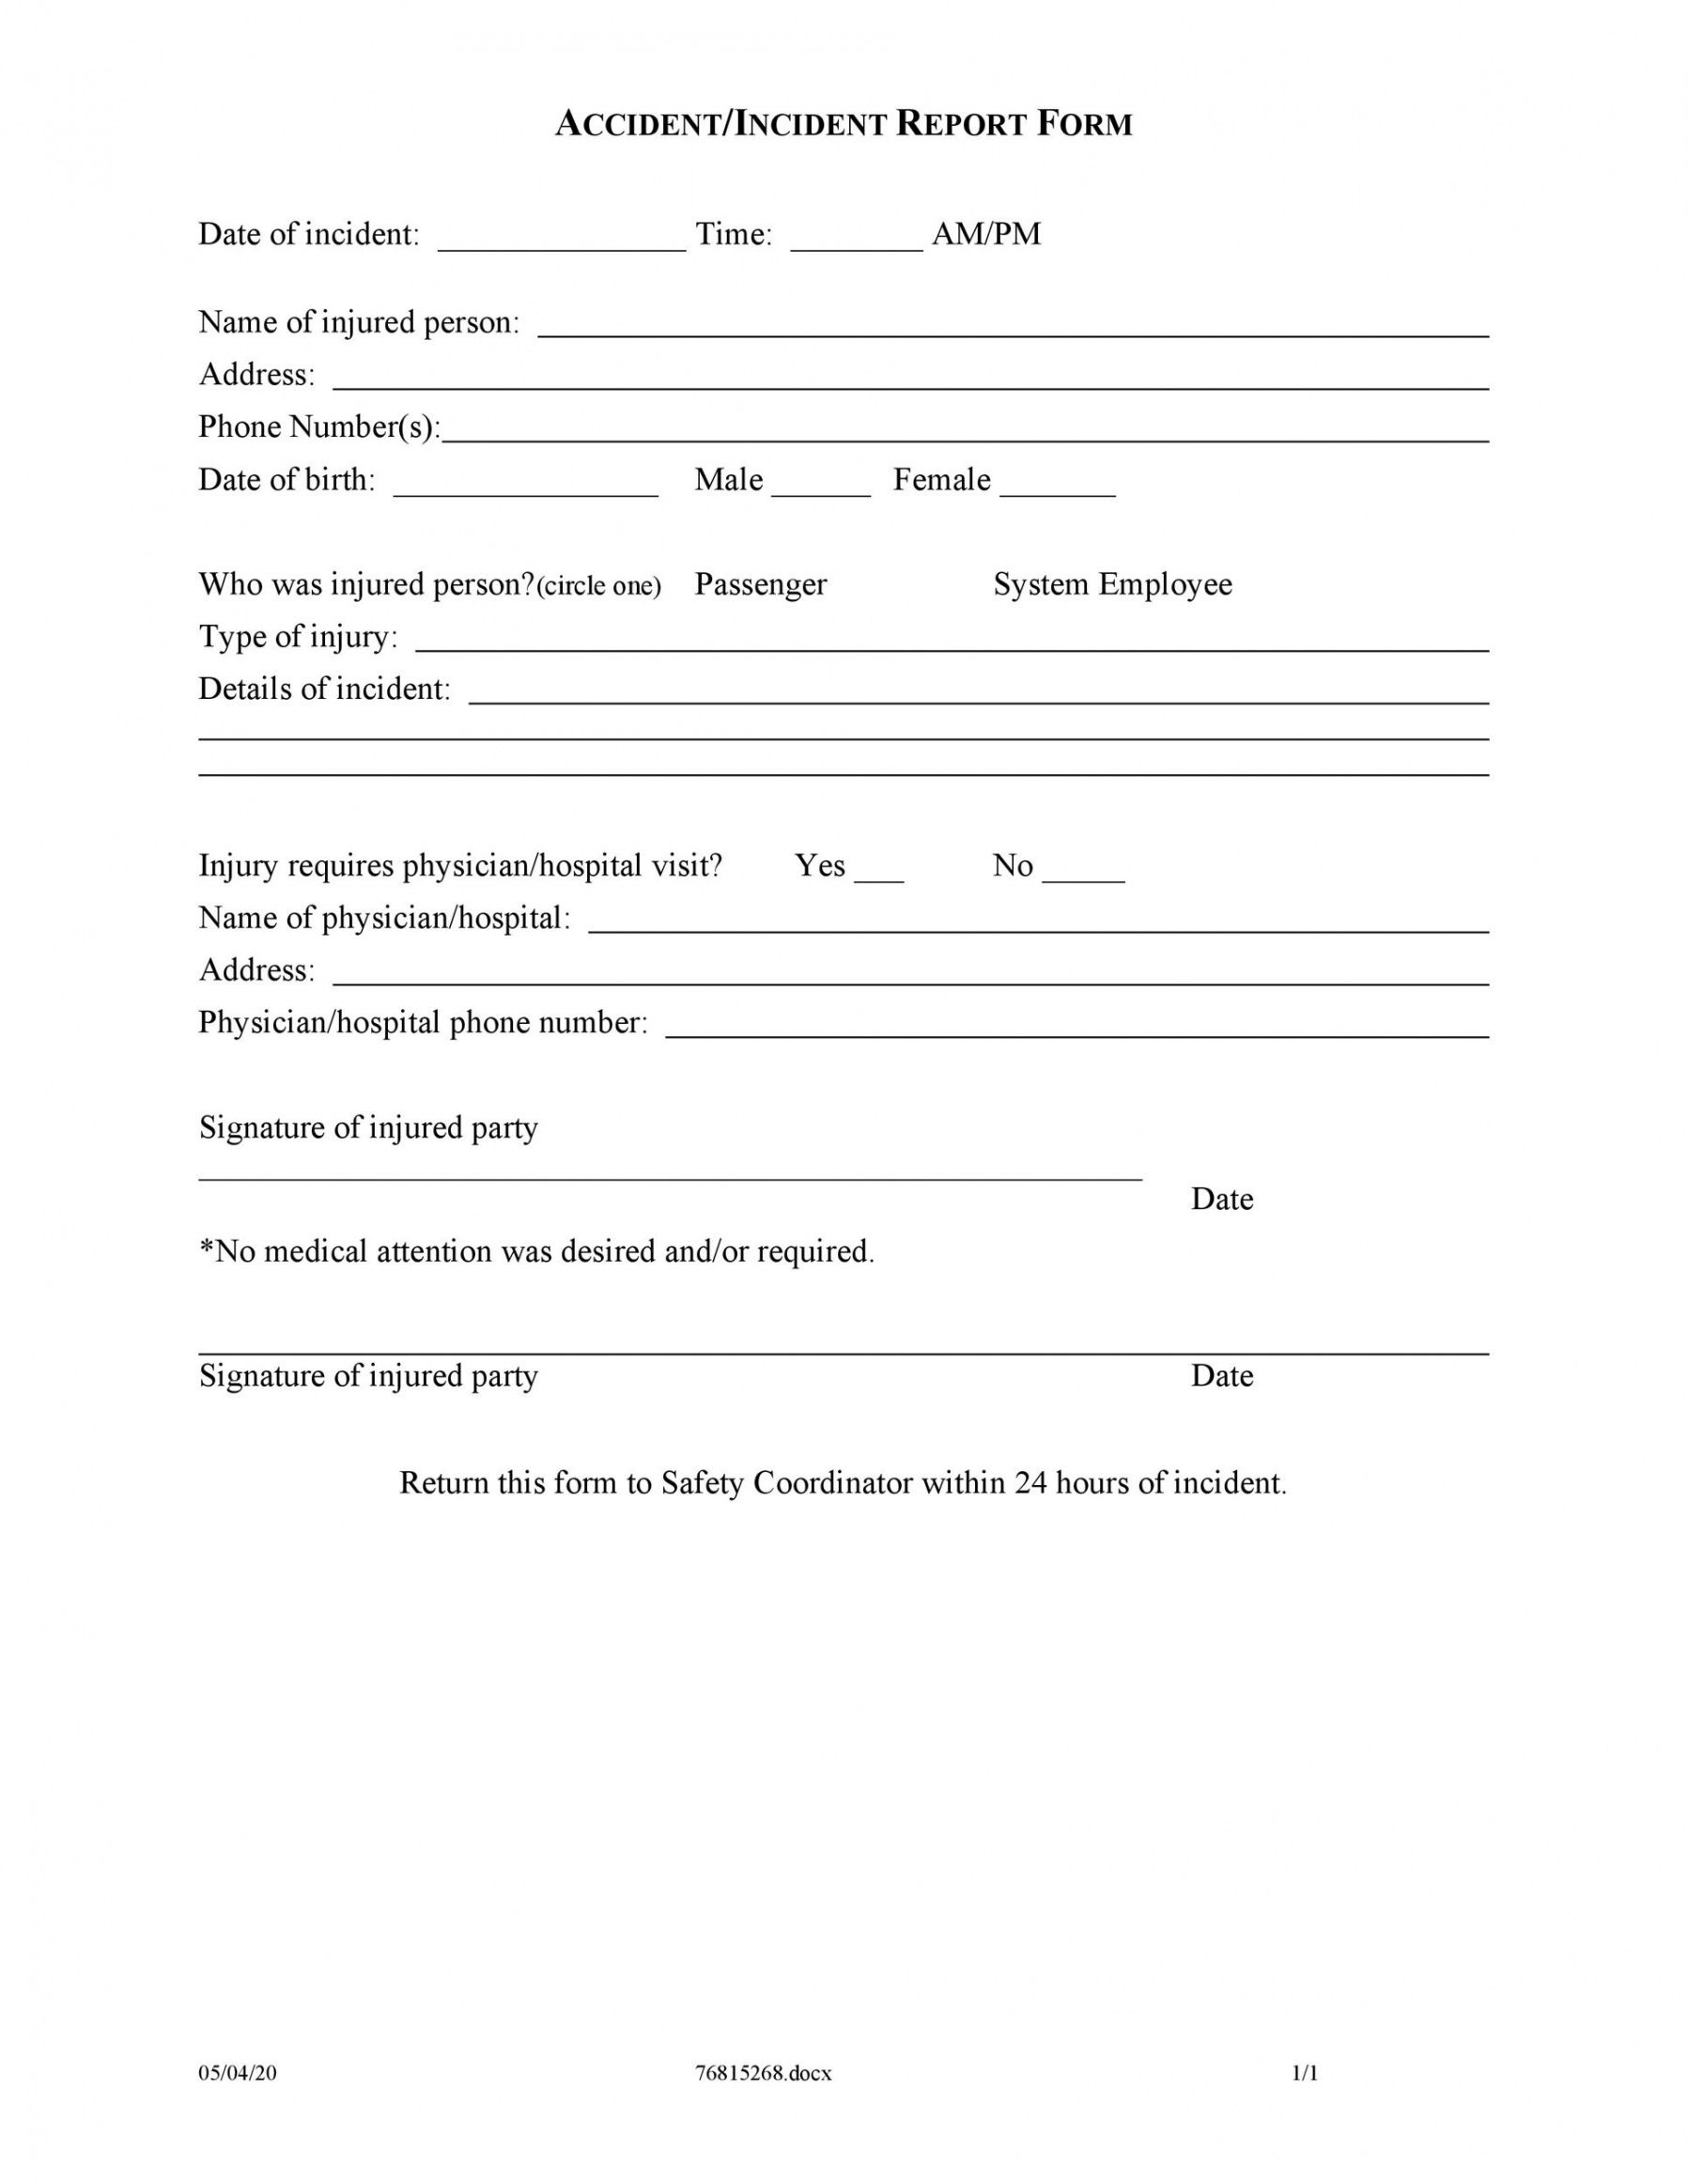 free 60 incident report template employee police generic injury report form template doc